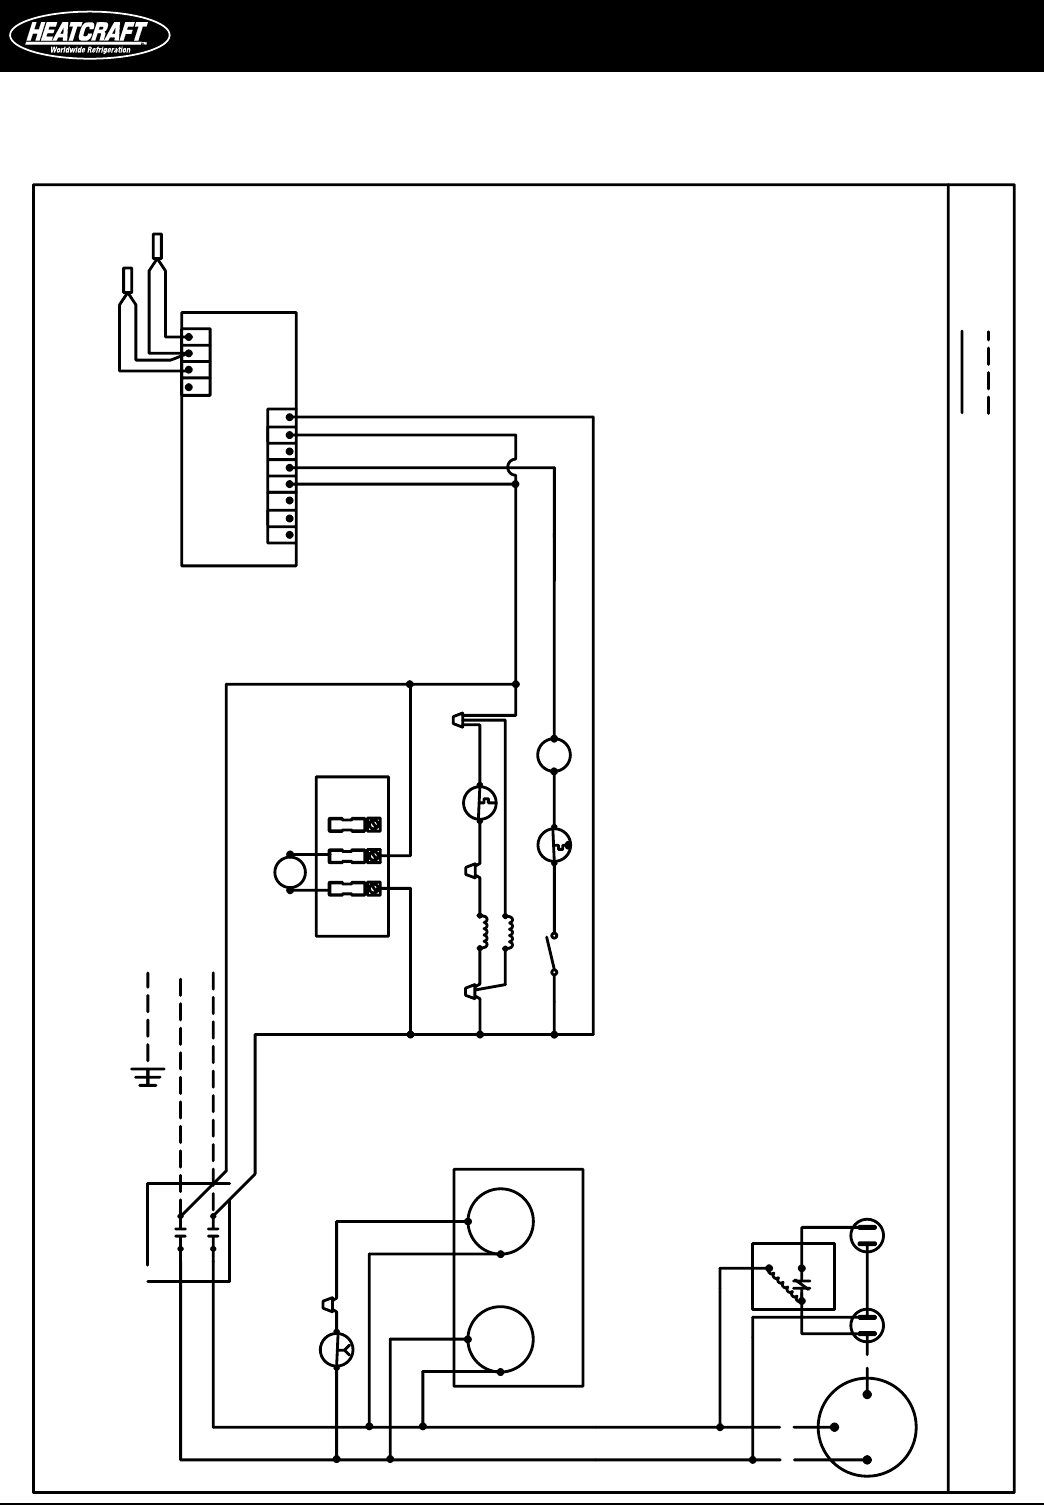 55587f91 c859 def4 0921 730c5709c050 bg10 bohn evaporator wiring diagram 230 460 motor wiring diagram \u2022 free heatcraft walk in cooler wiring diagram at gsmx.co